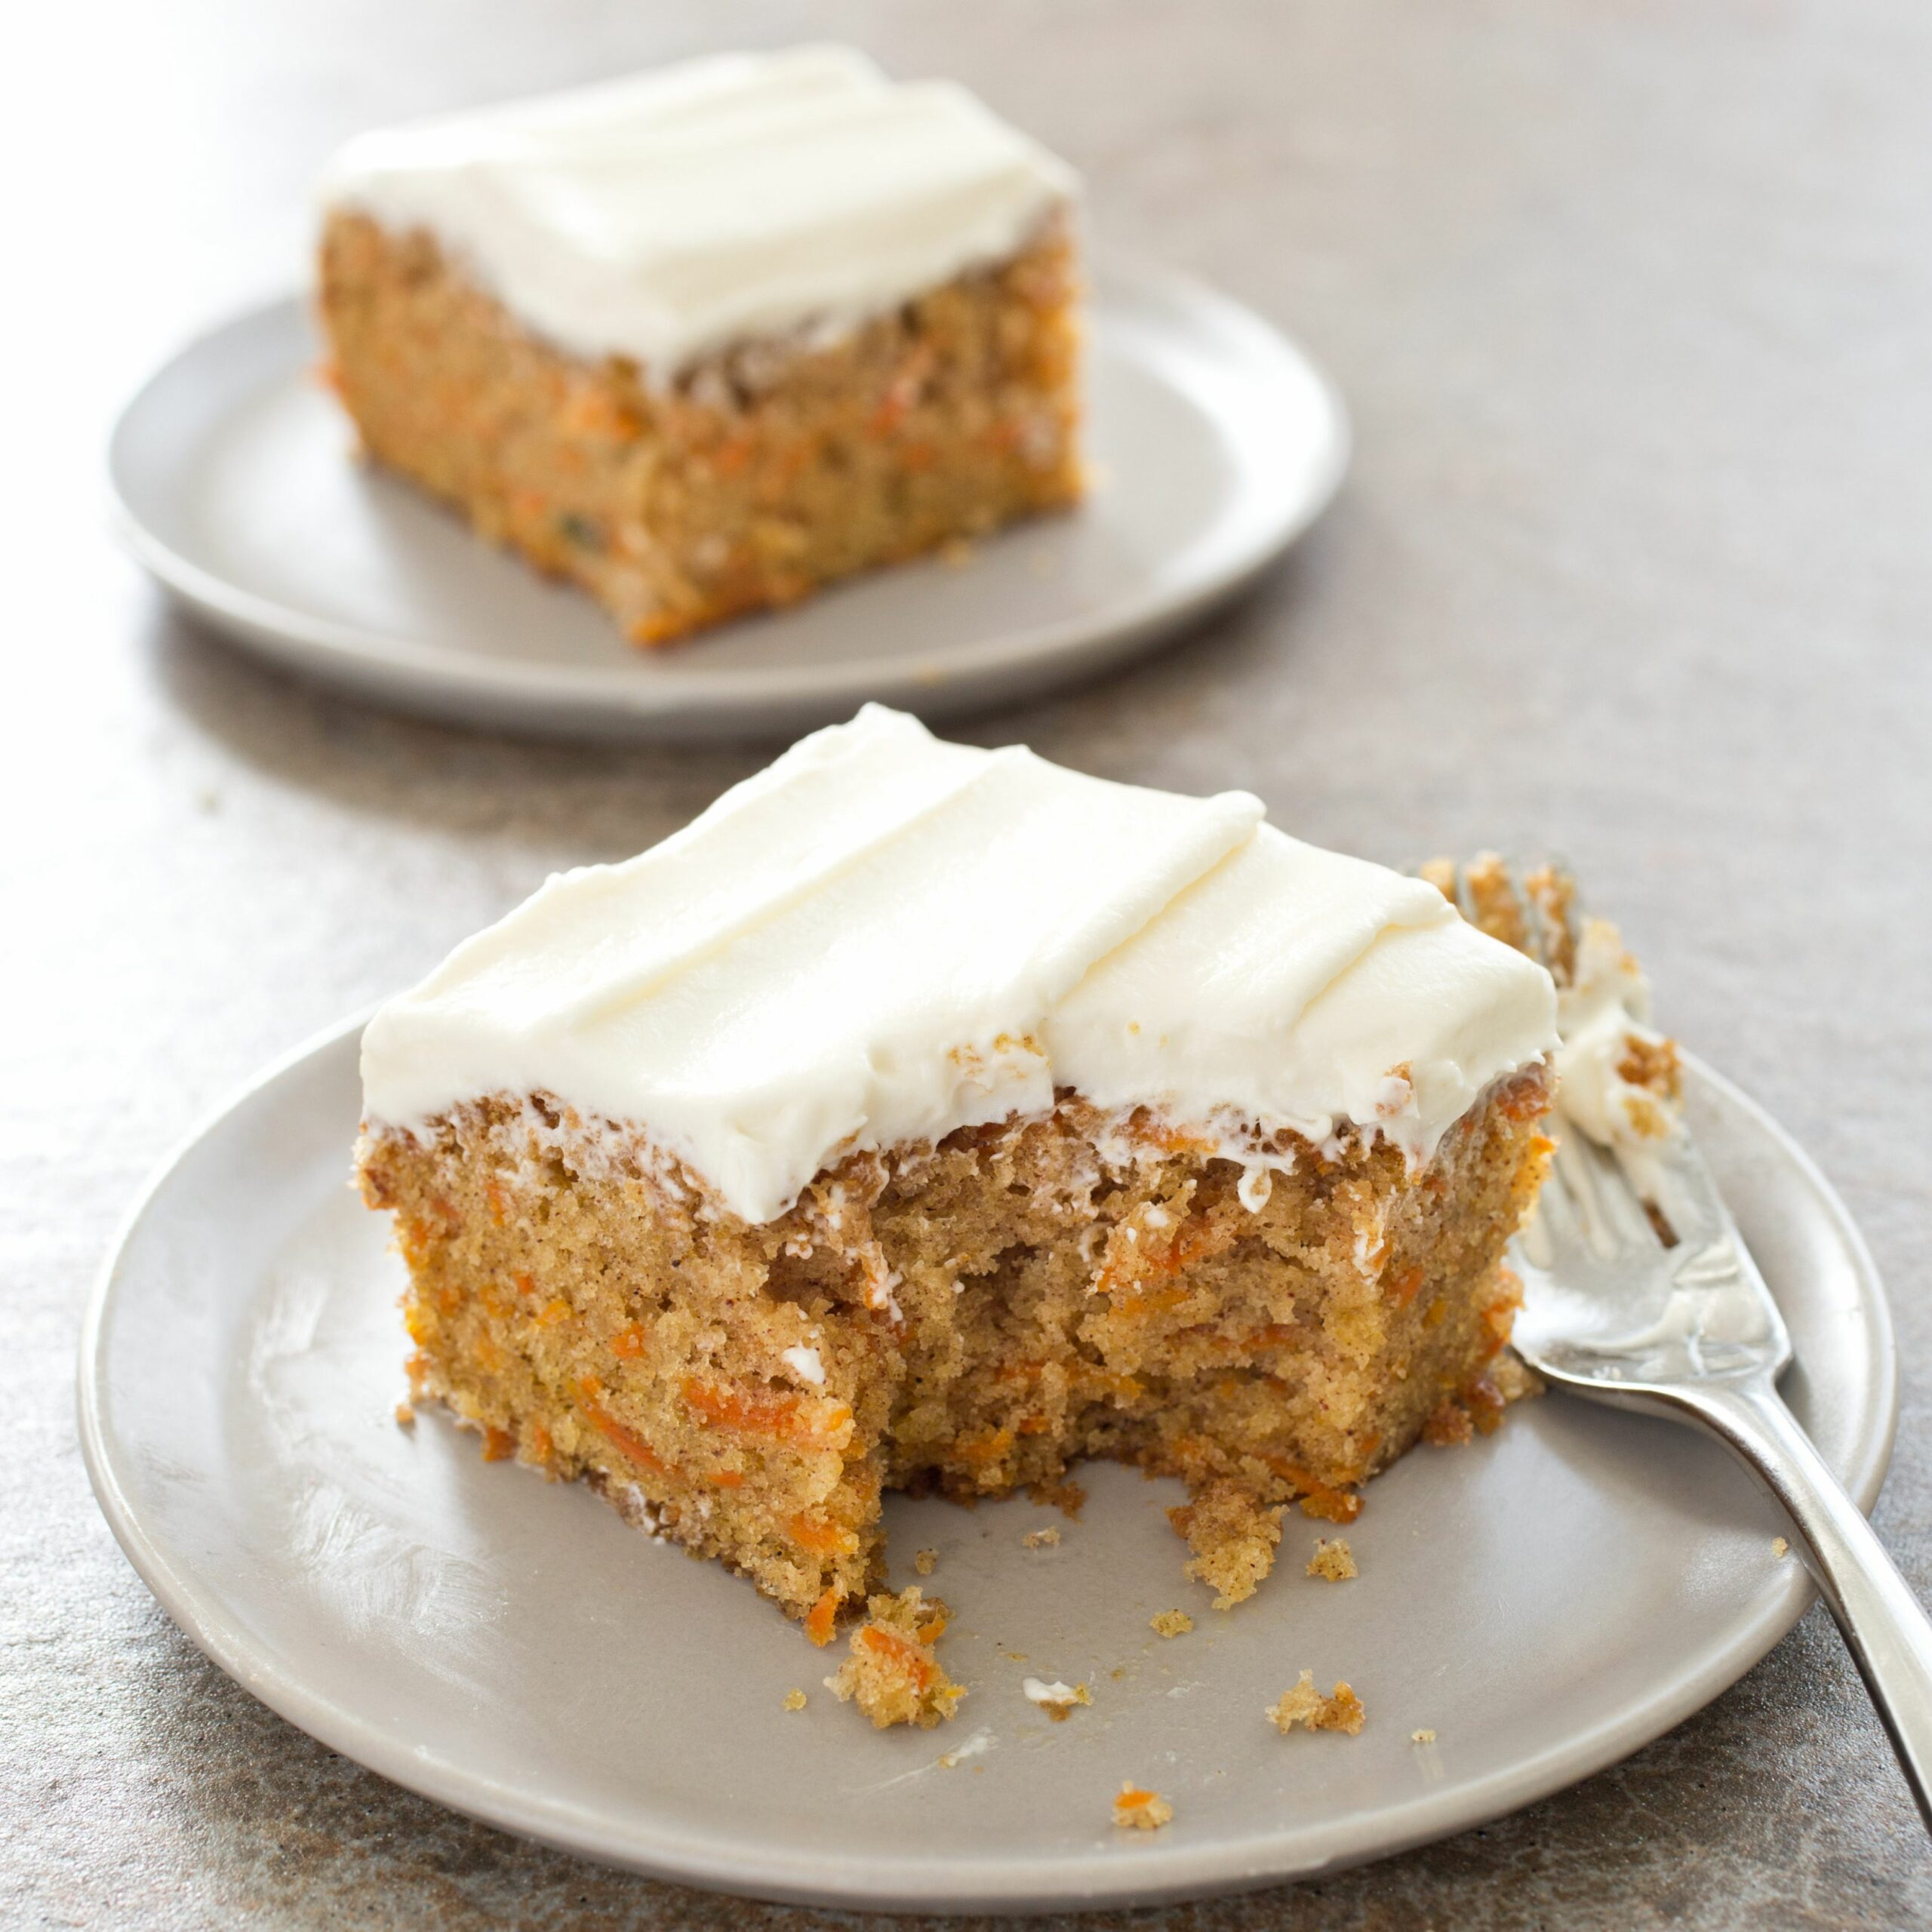 Simple Carrot Cake with Cream Cheese Frosting - Simple Recipes Carrot Cake